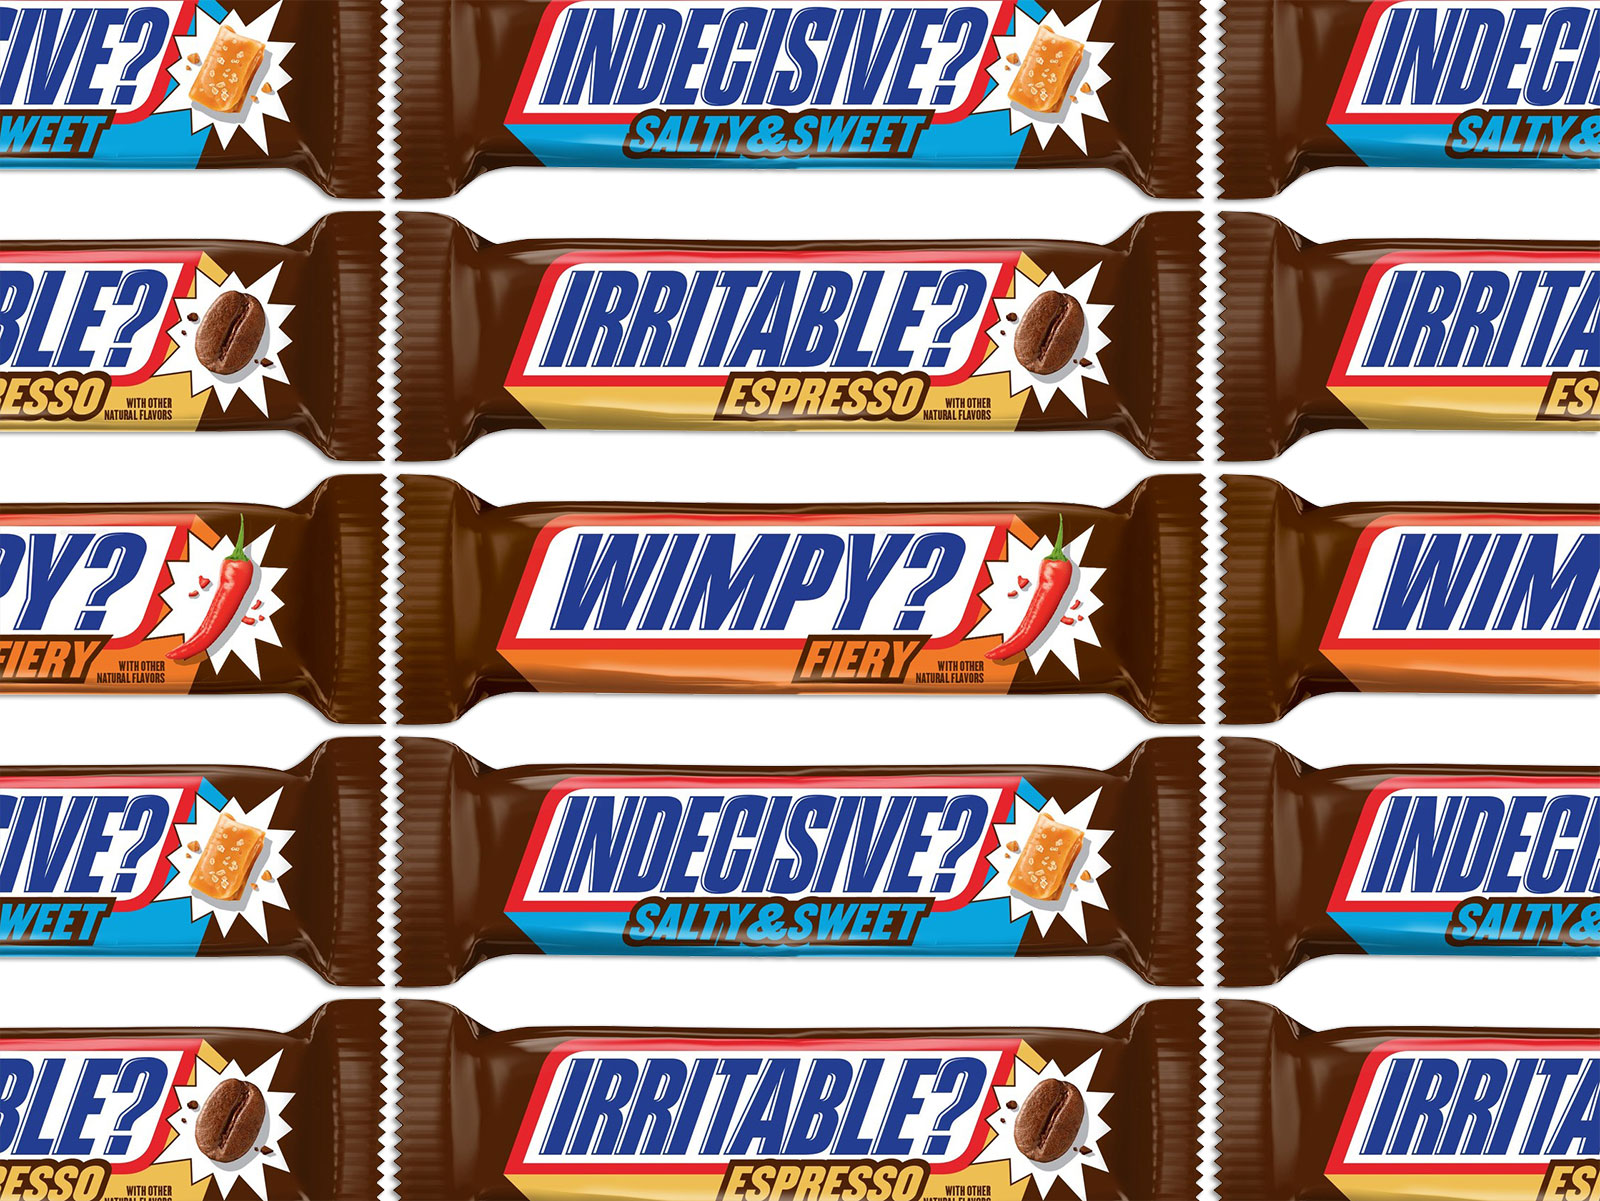 snickers limited edition